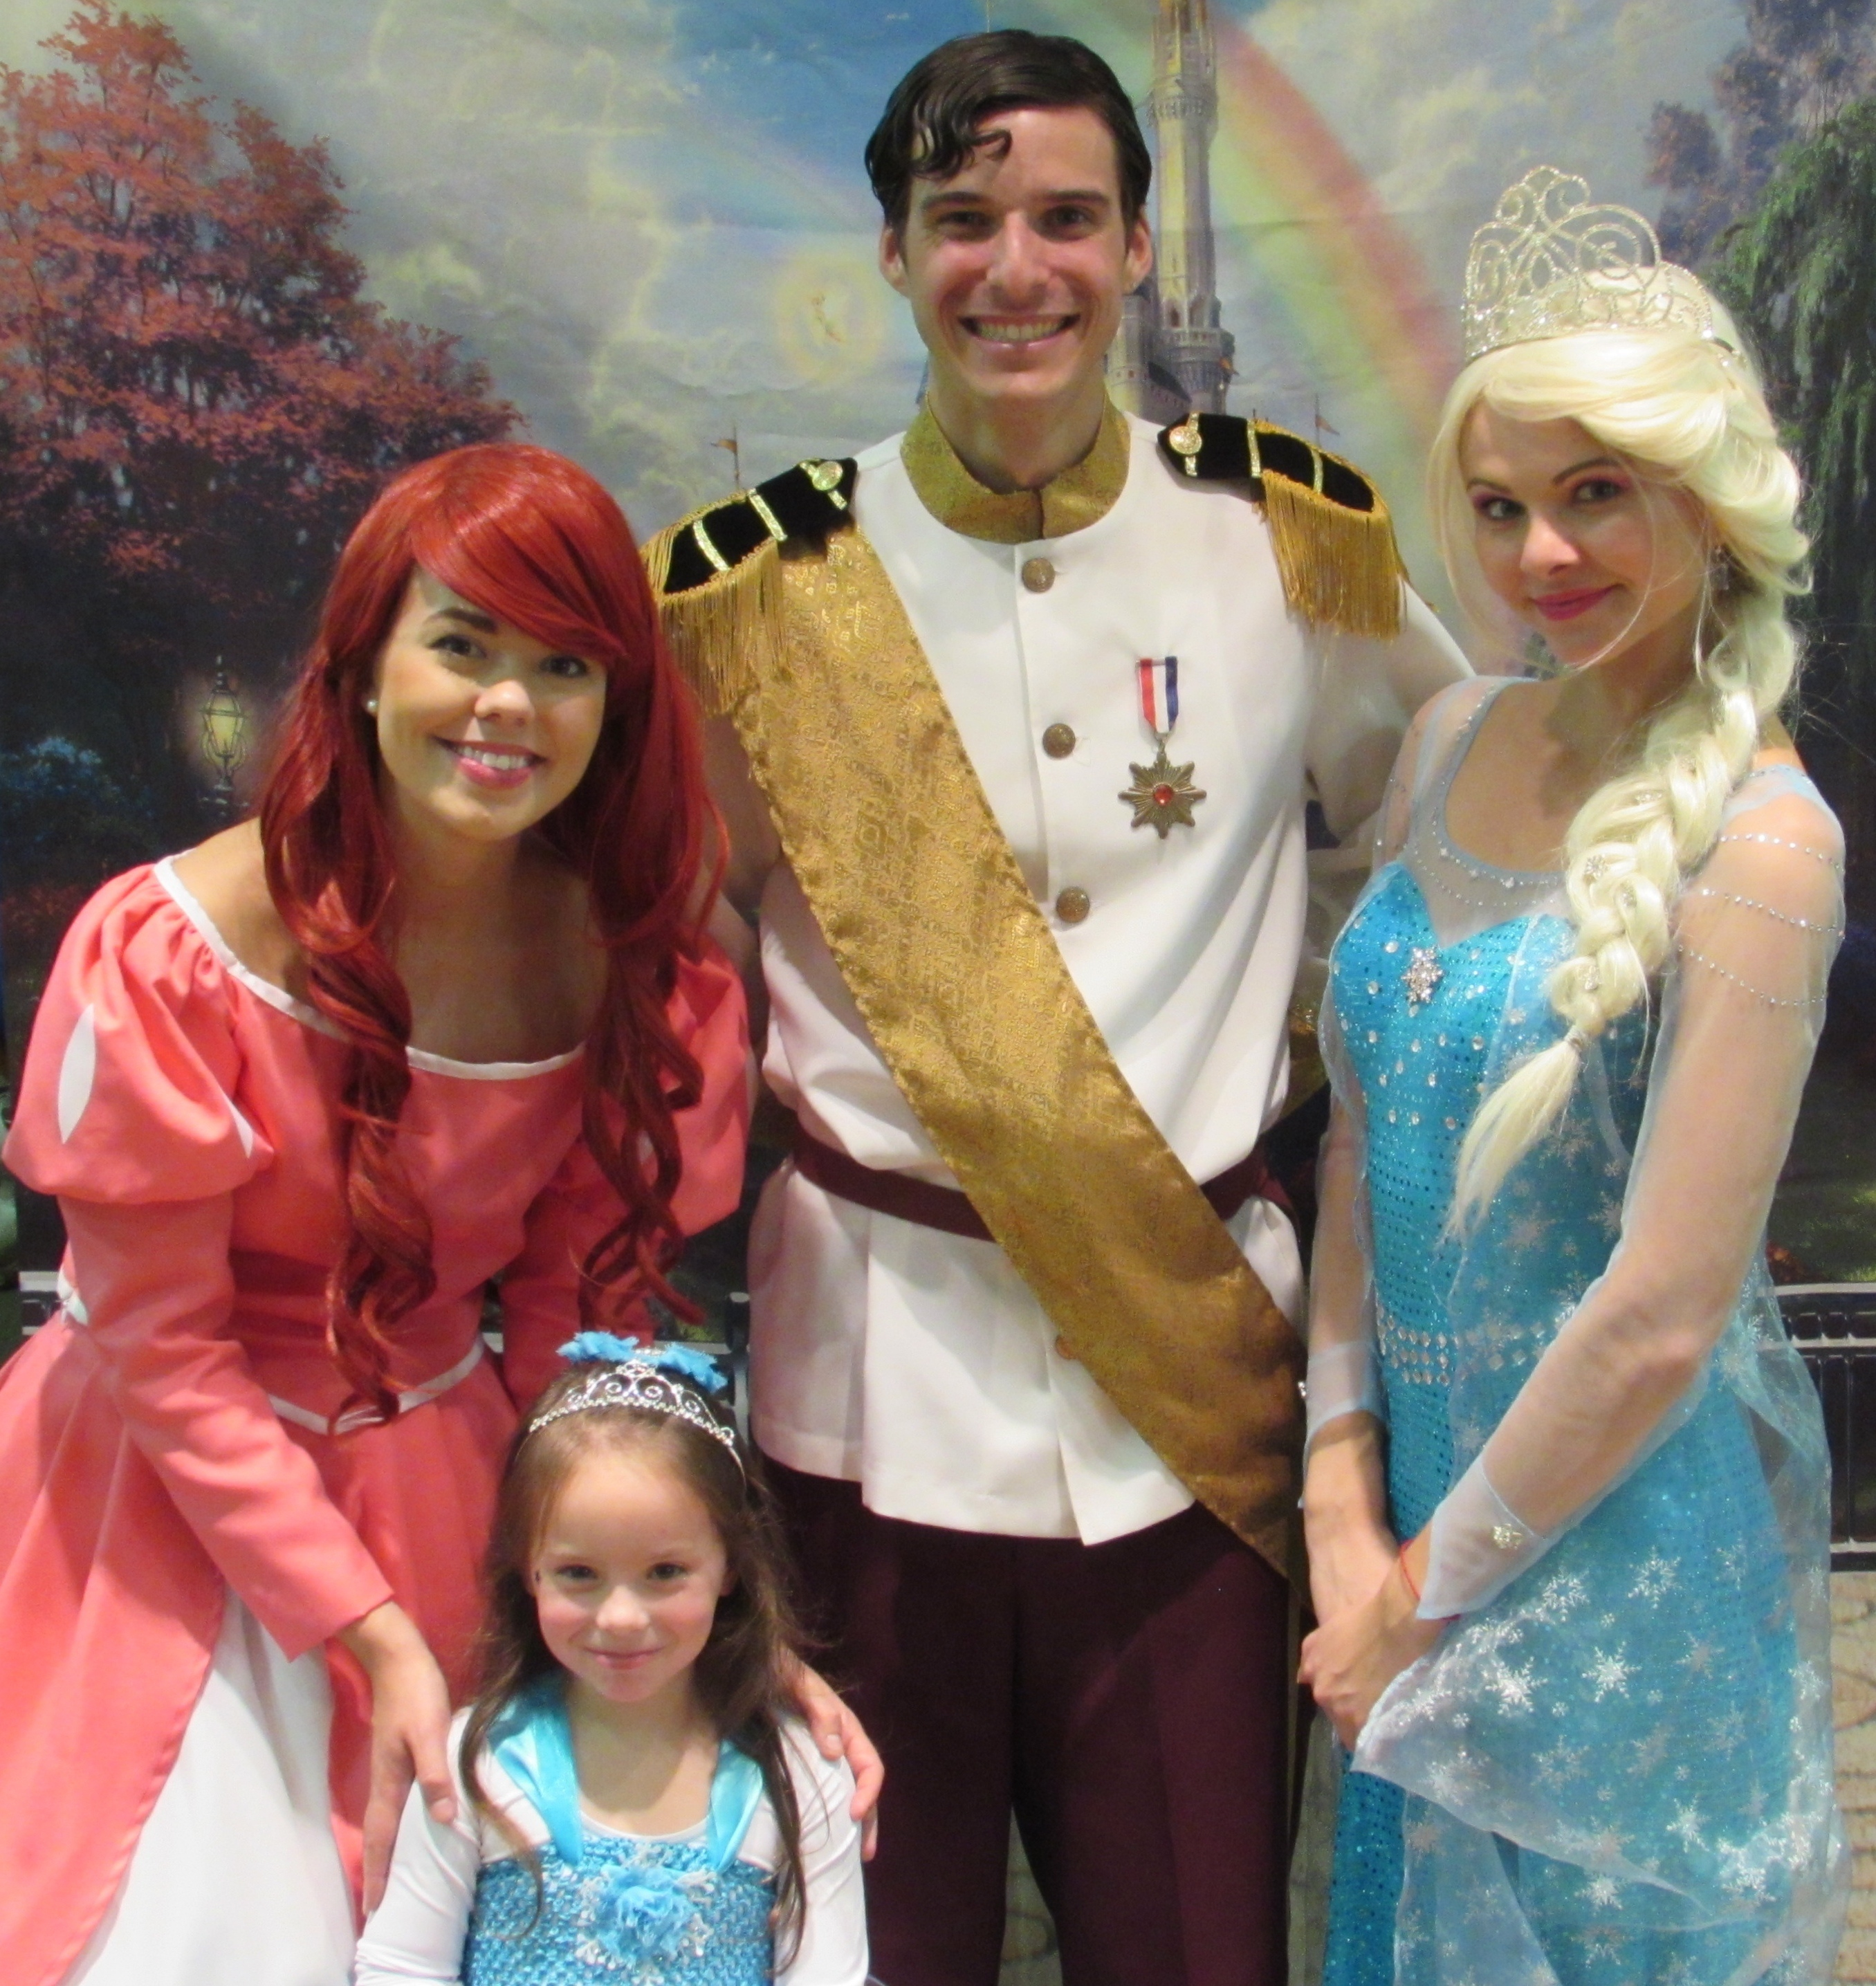 Cate and princesses 10-5-14